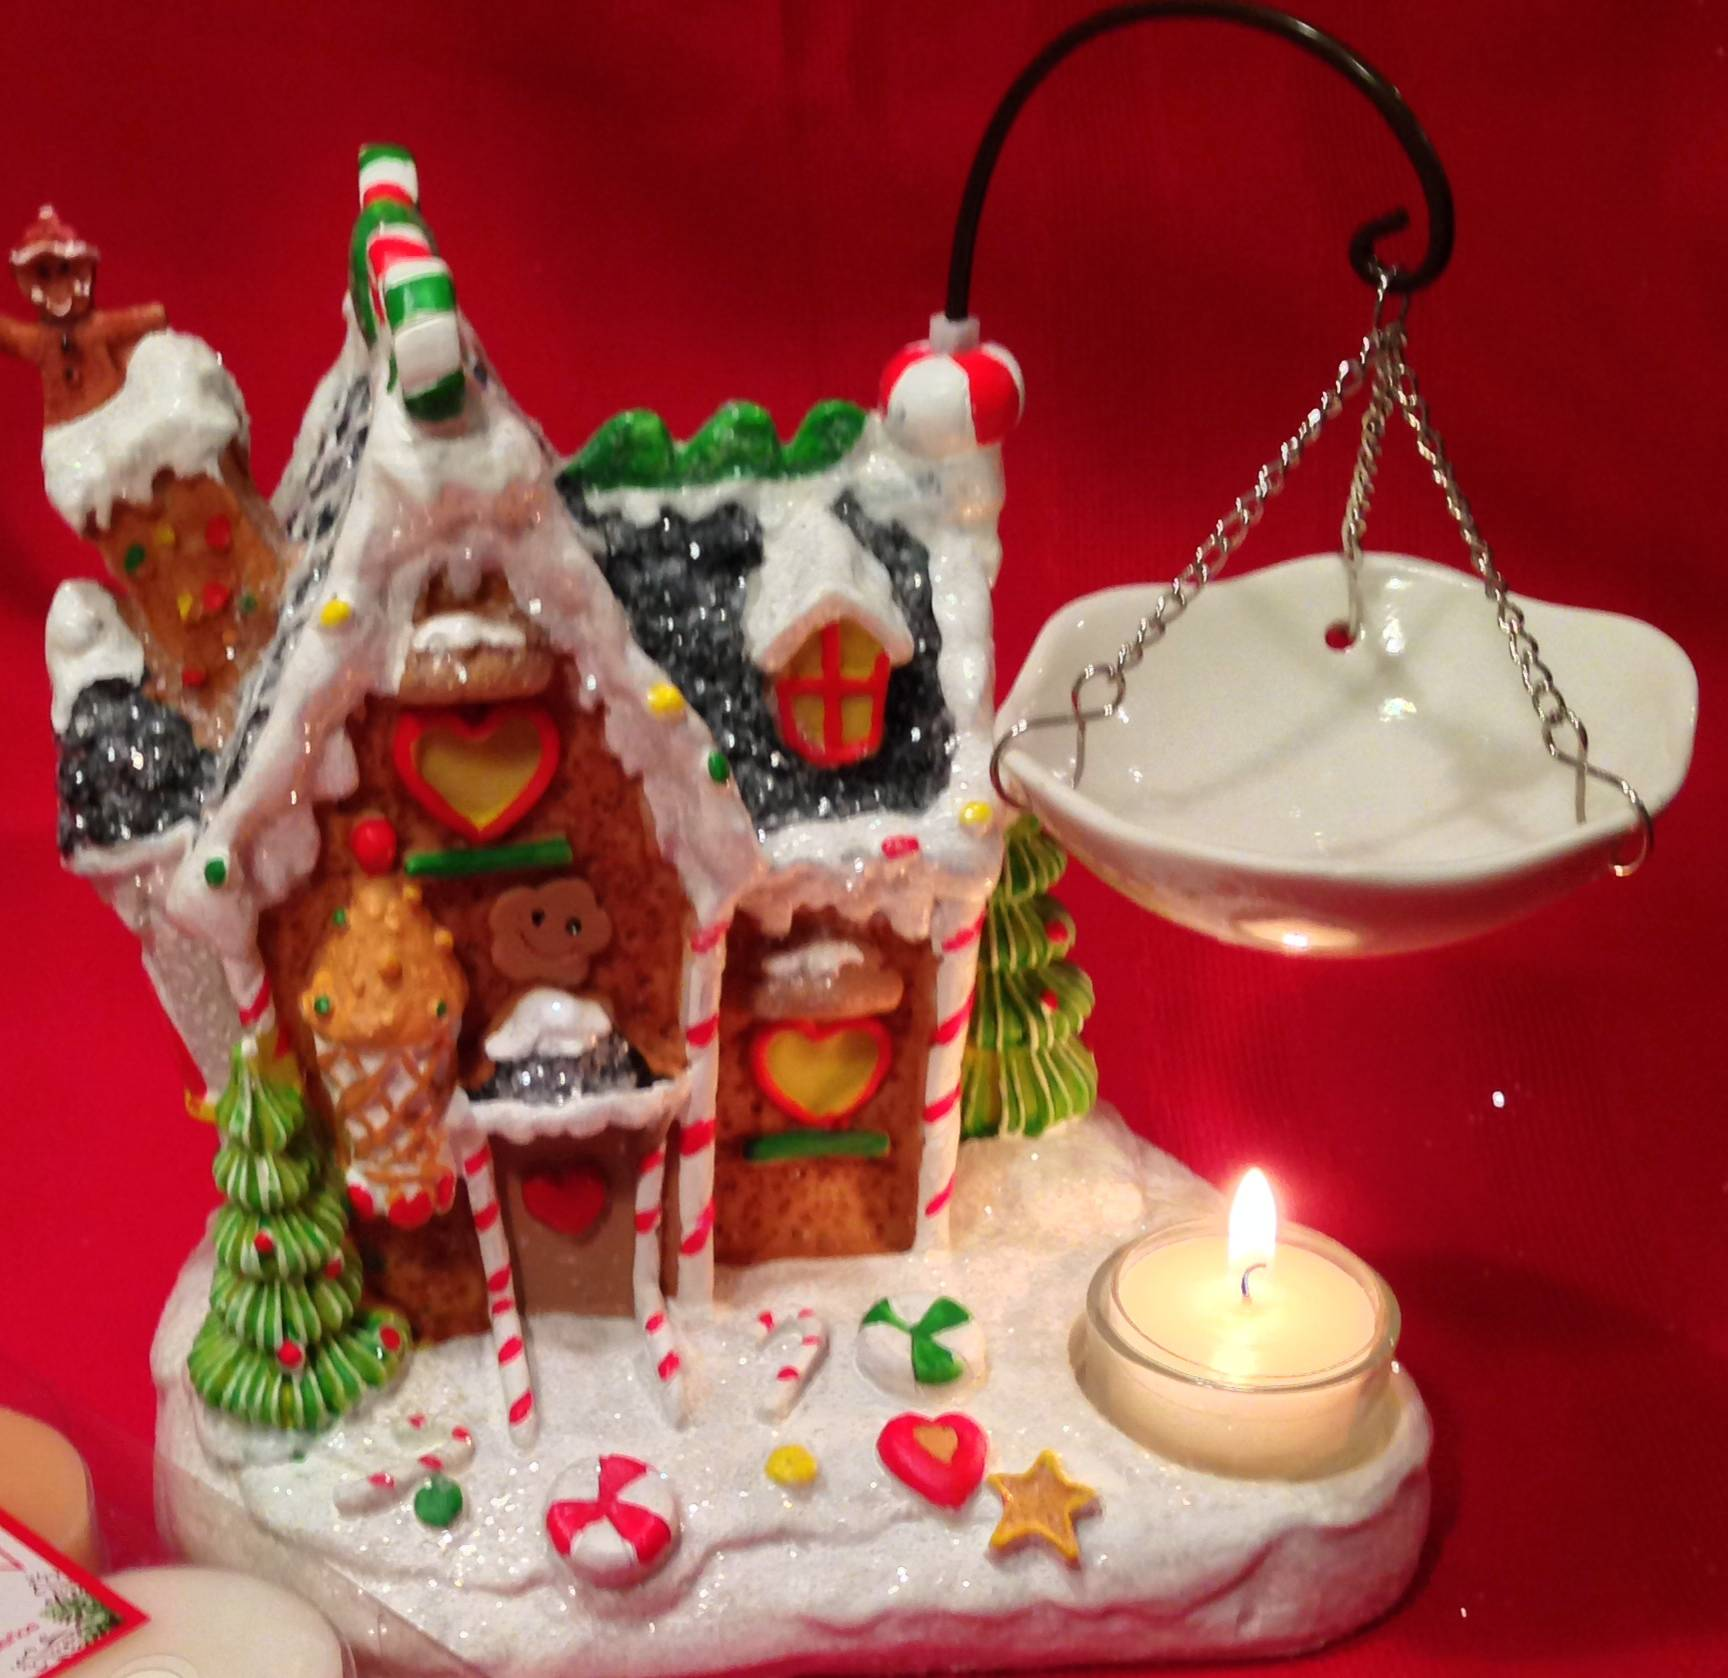 Item 14 ceramic gingerbread house wax melt warmer by avon